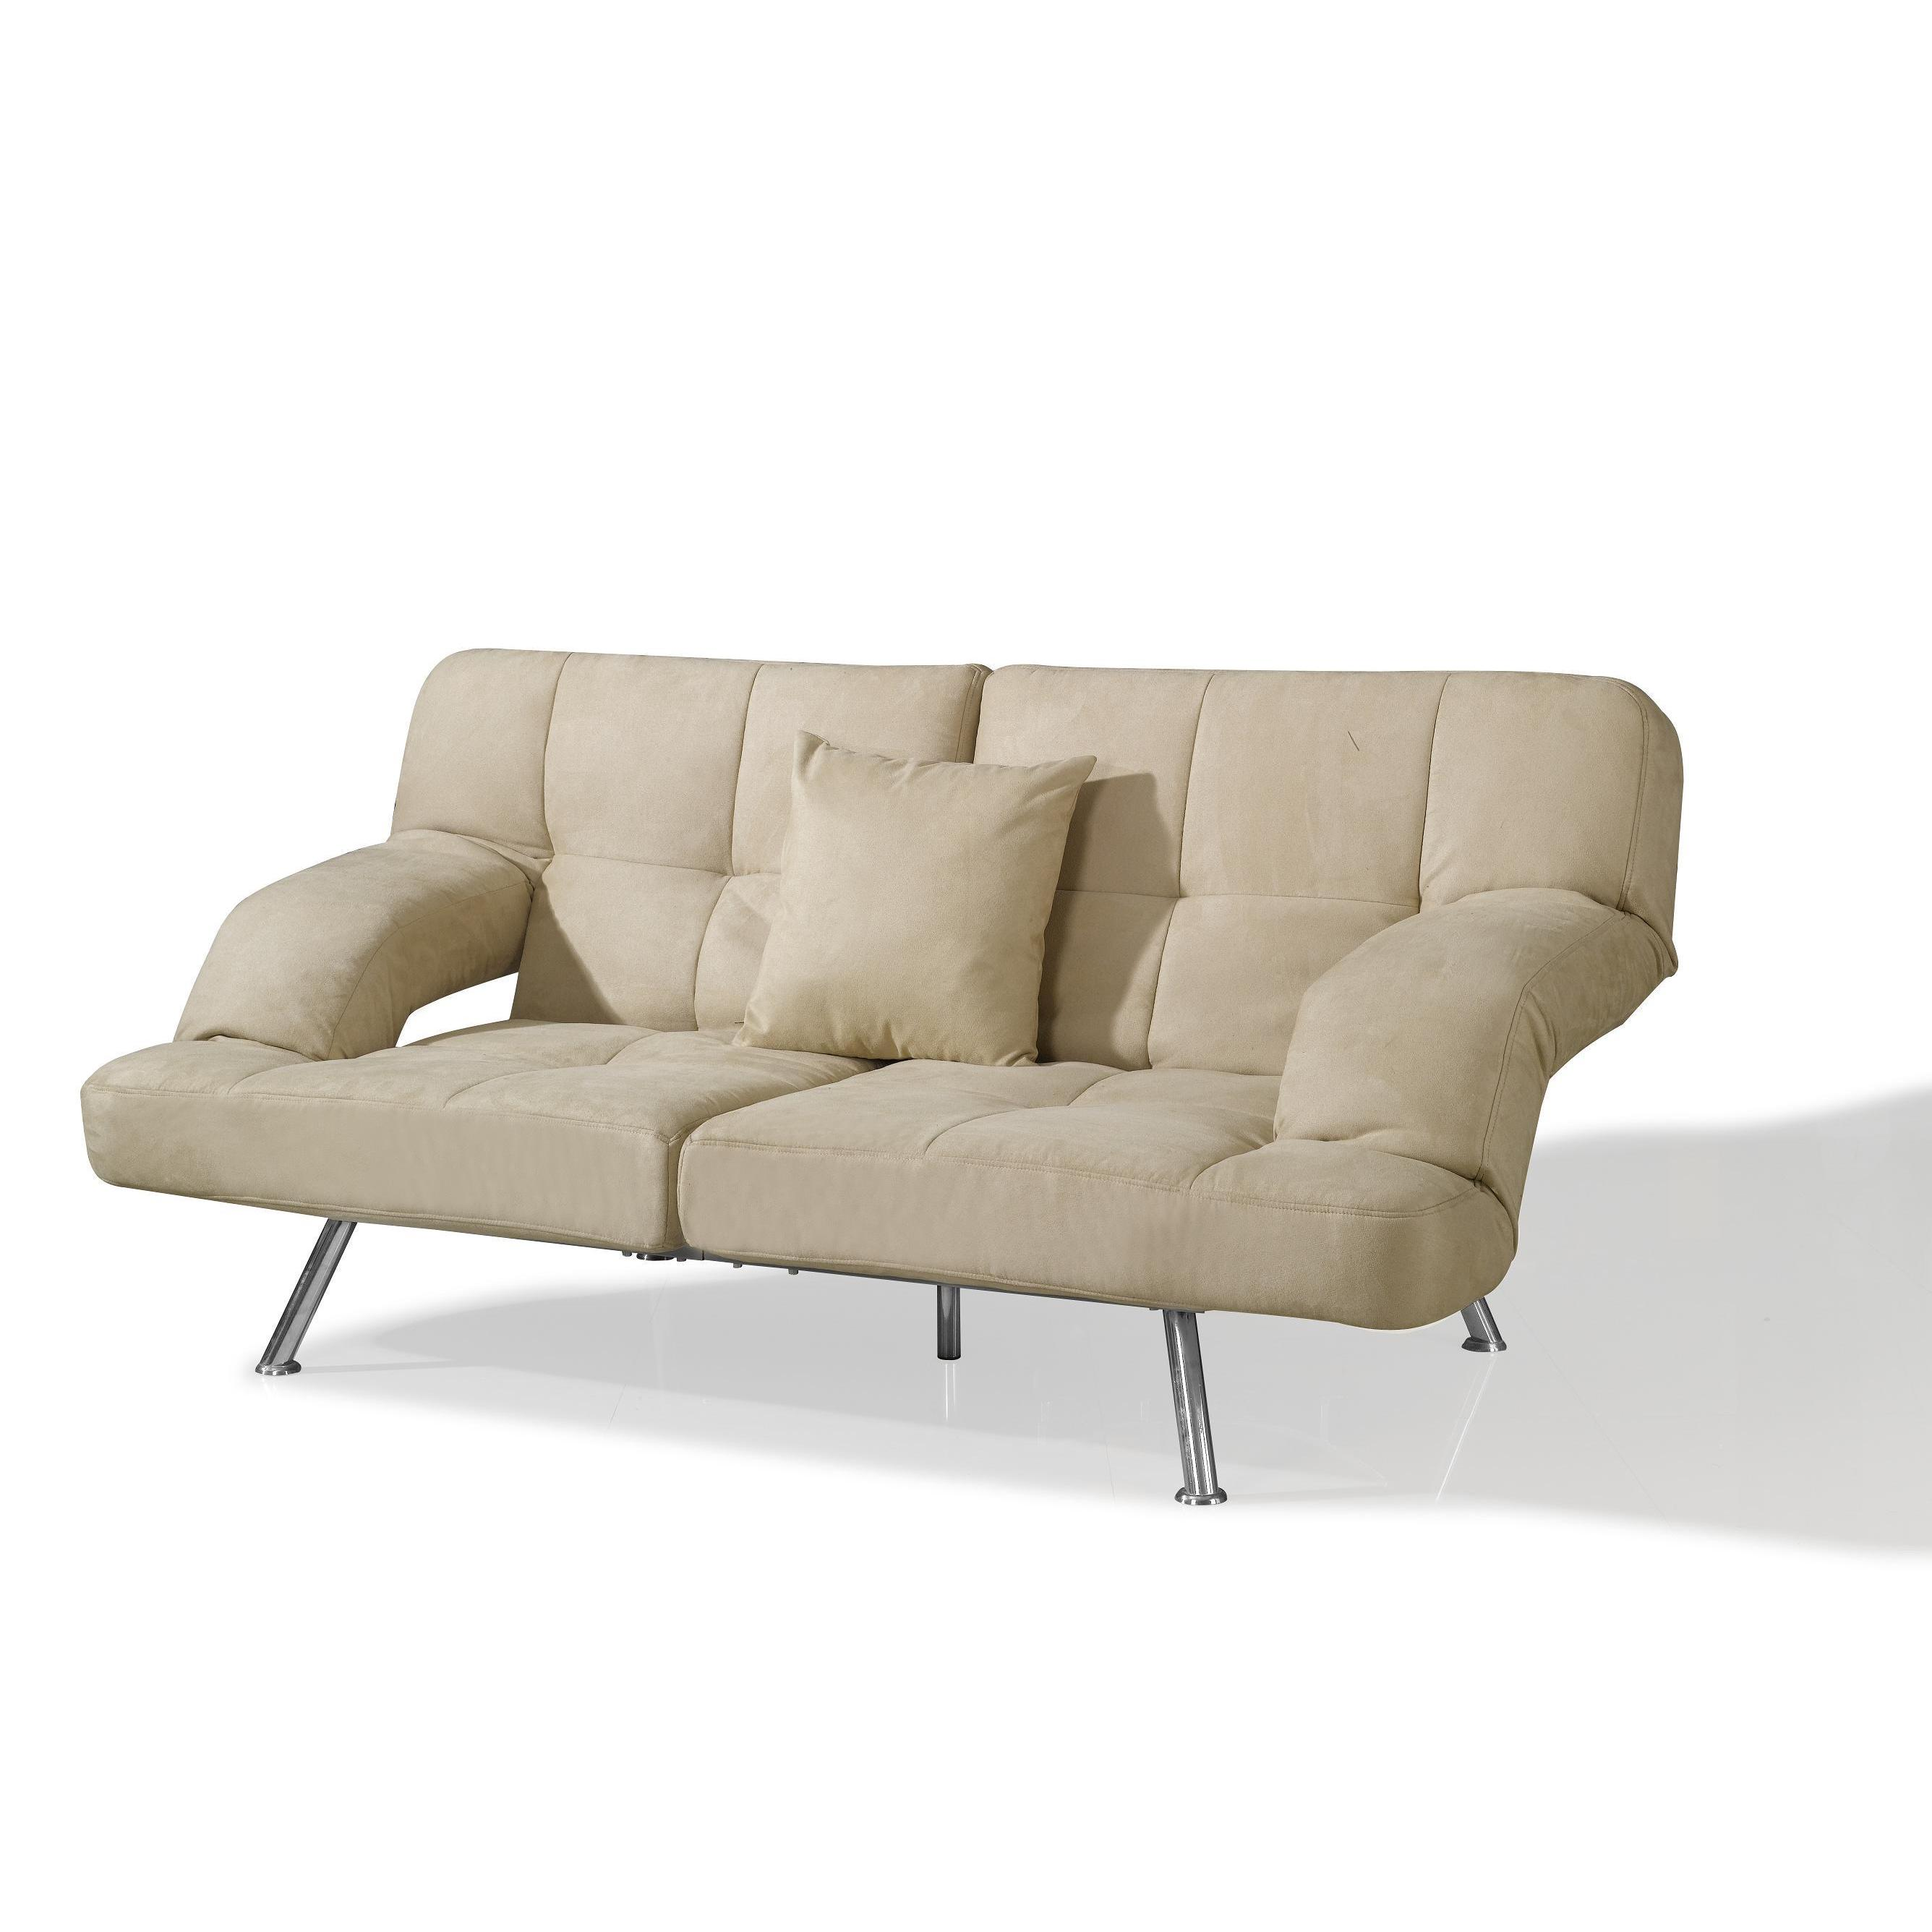 Chai Microsuede Sofa Bed Free Shipping Today 1907674